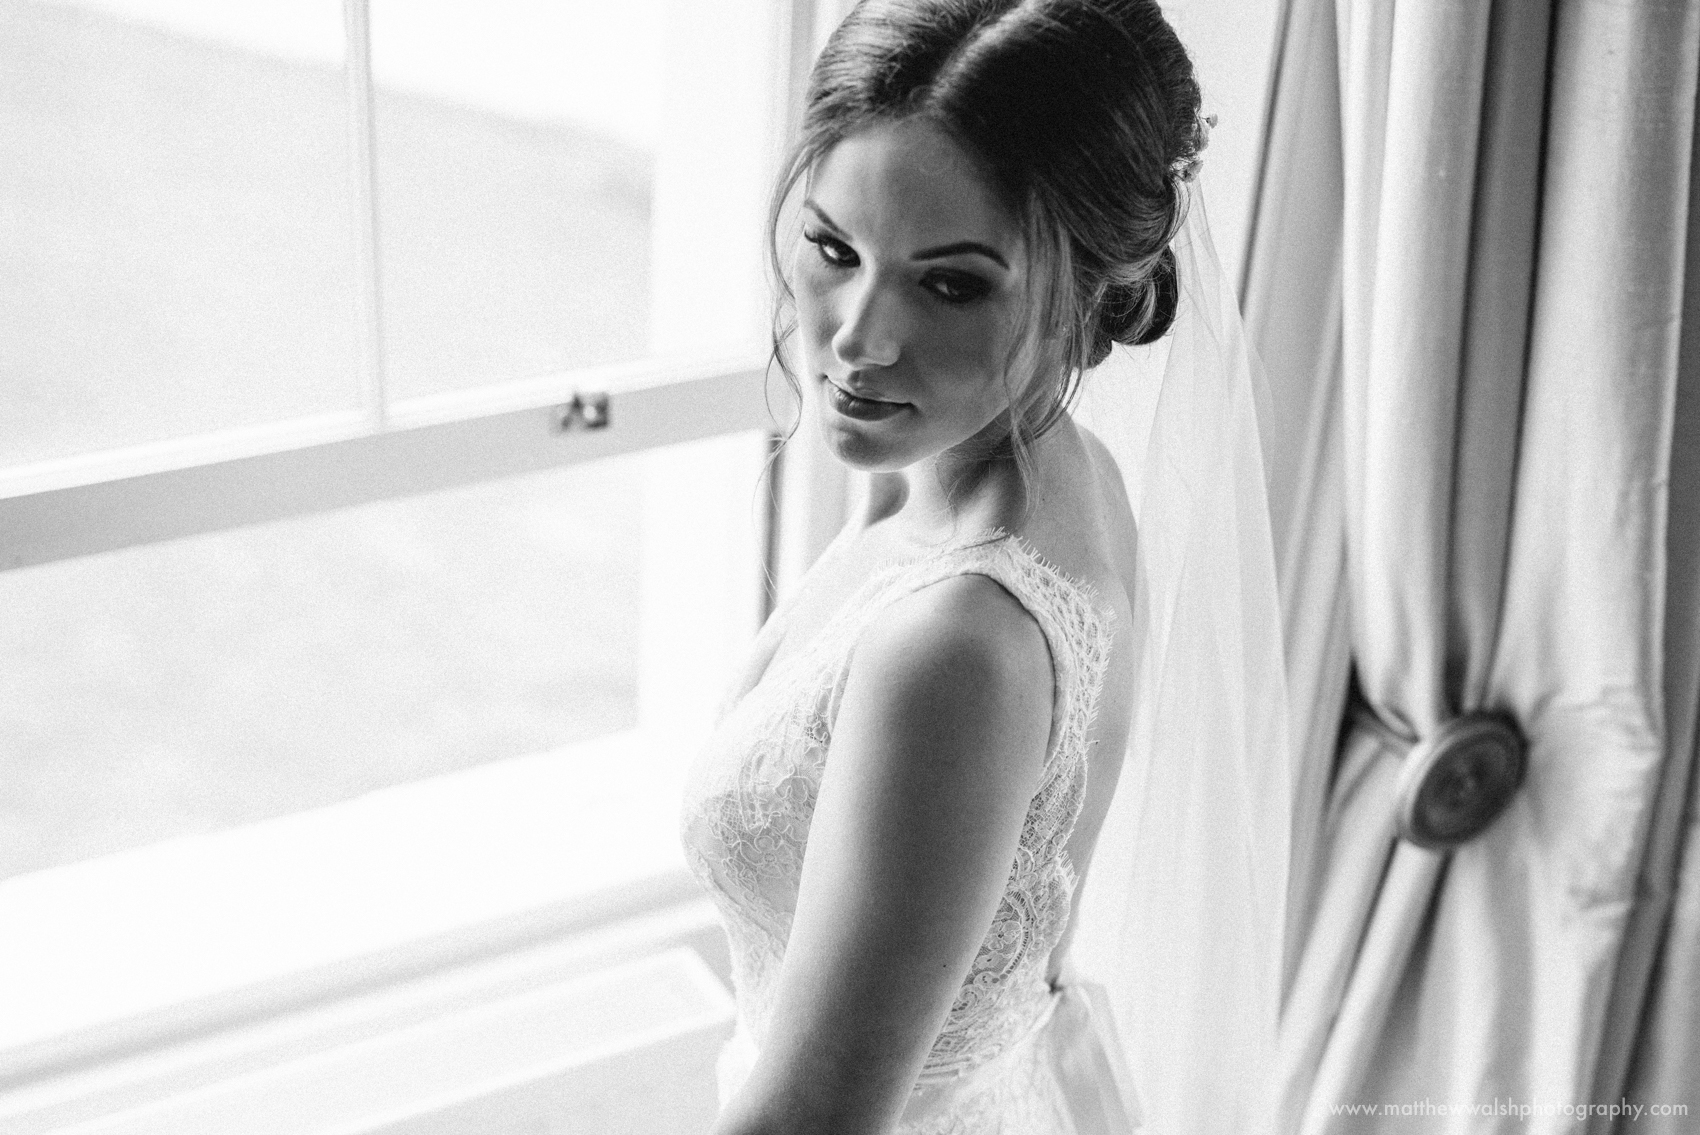 The bride looking stunning as she looks back over her shoulder